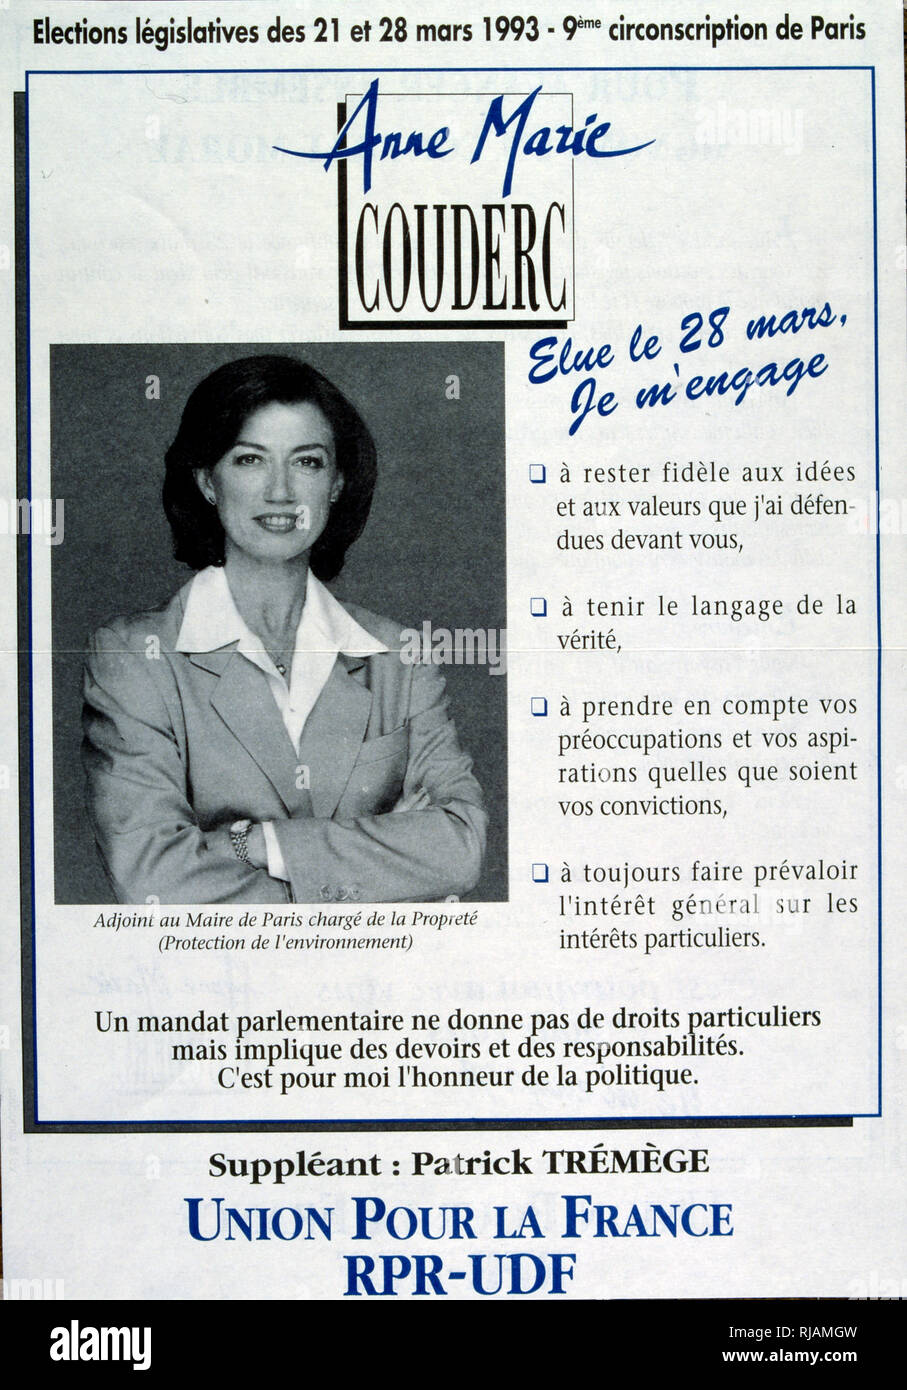 1993 Election poster for Anne-Marie Couderc, born February 13, 1950, politician and leader of French companies. Member of Parliament from 1993 to 1995, Secretary of State and Minister responsible for Employment from 1995 to 1997, she is president of Presstalis1,2 from 2010 to 2017 and has been acting President of Air France-KLM since May 15, 2018. - Stock Image